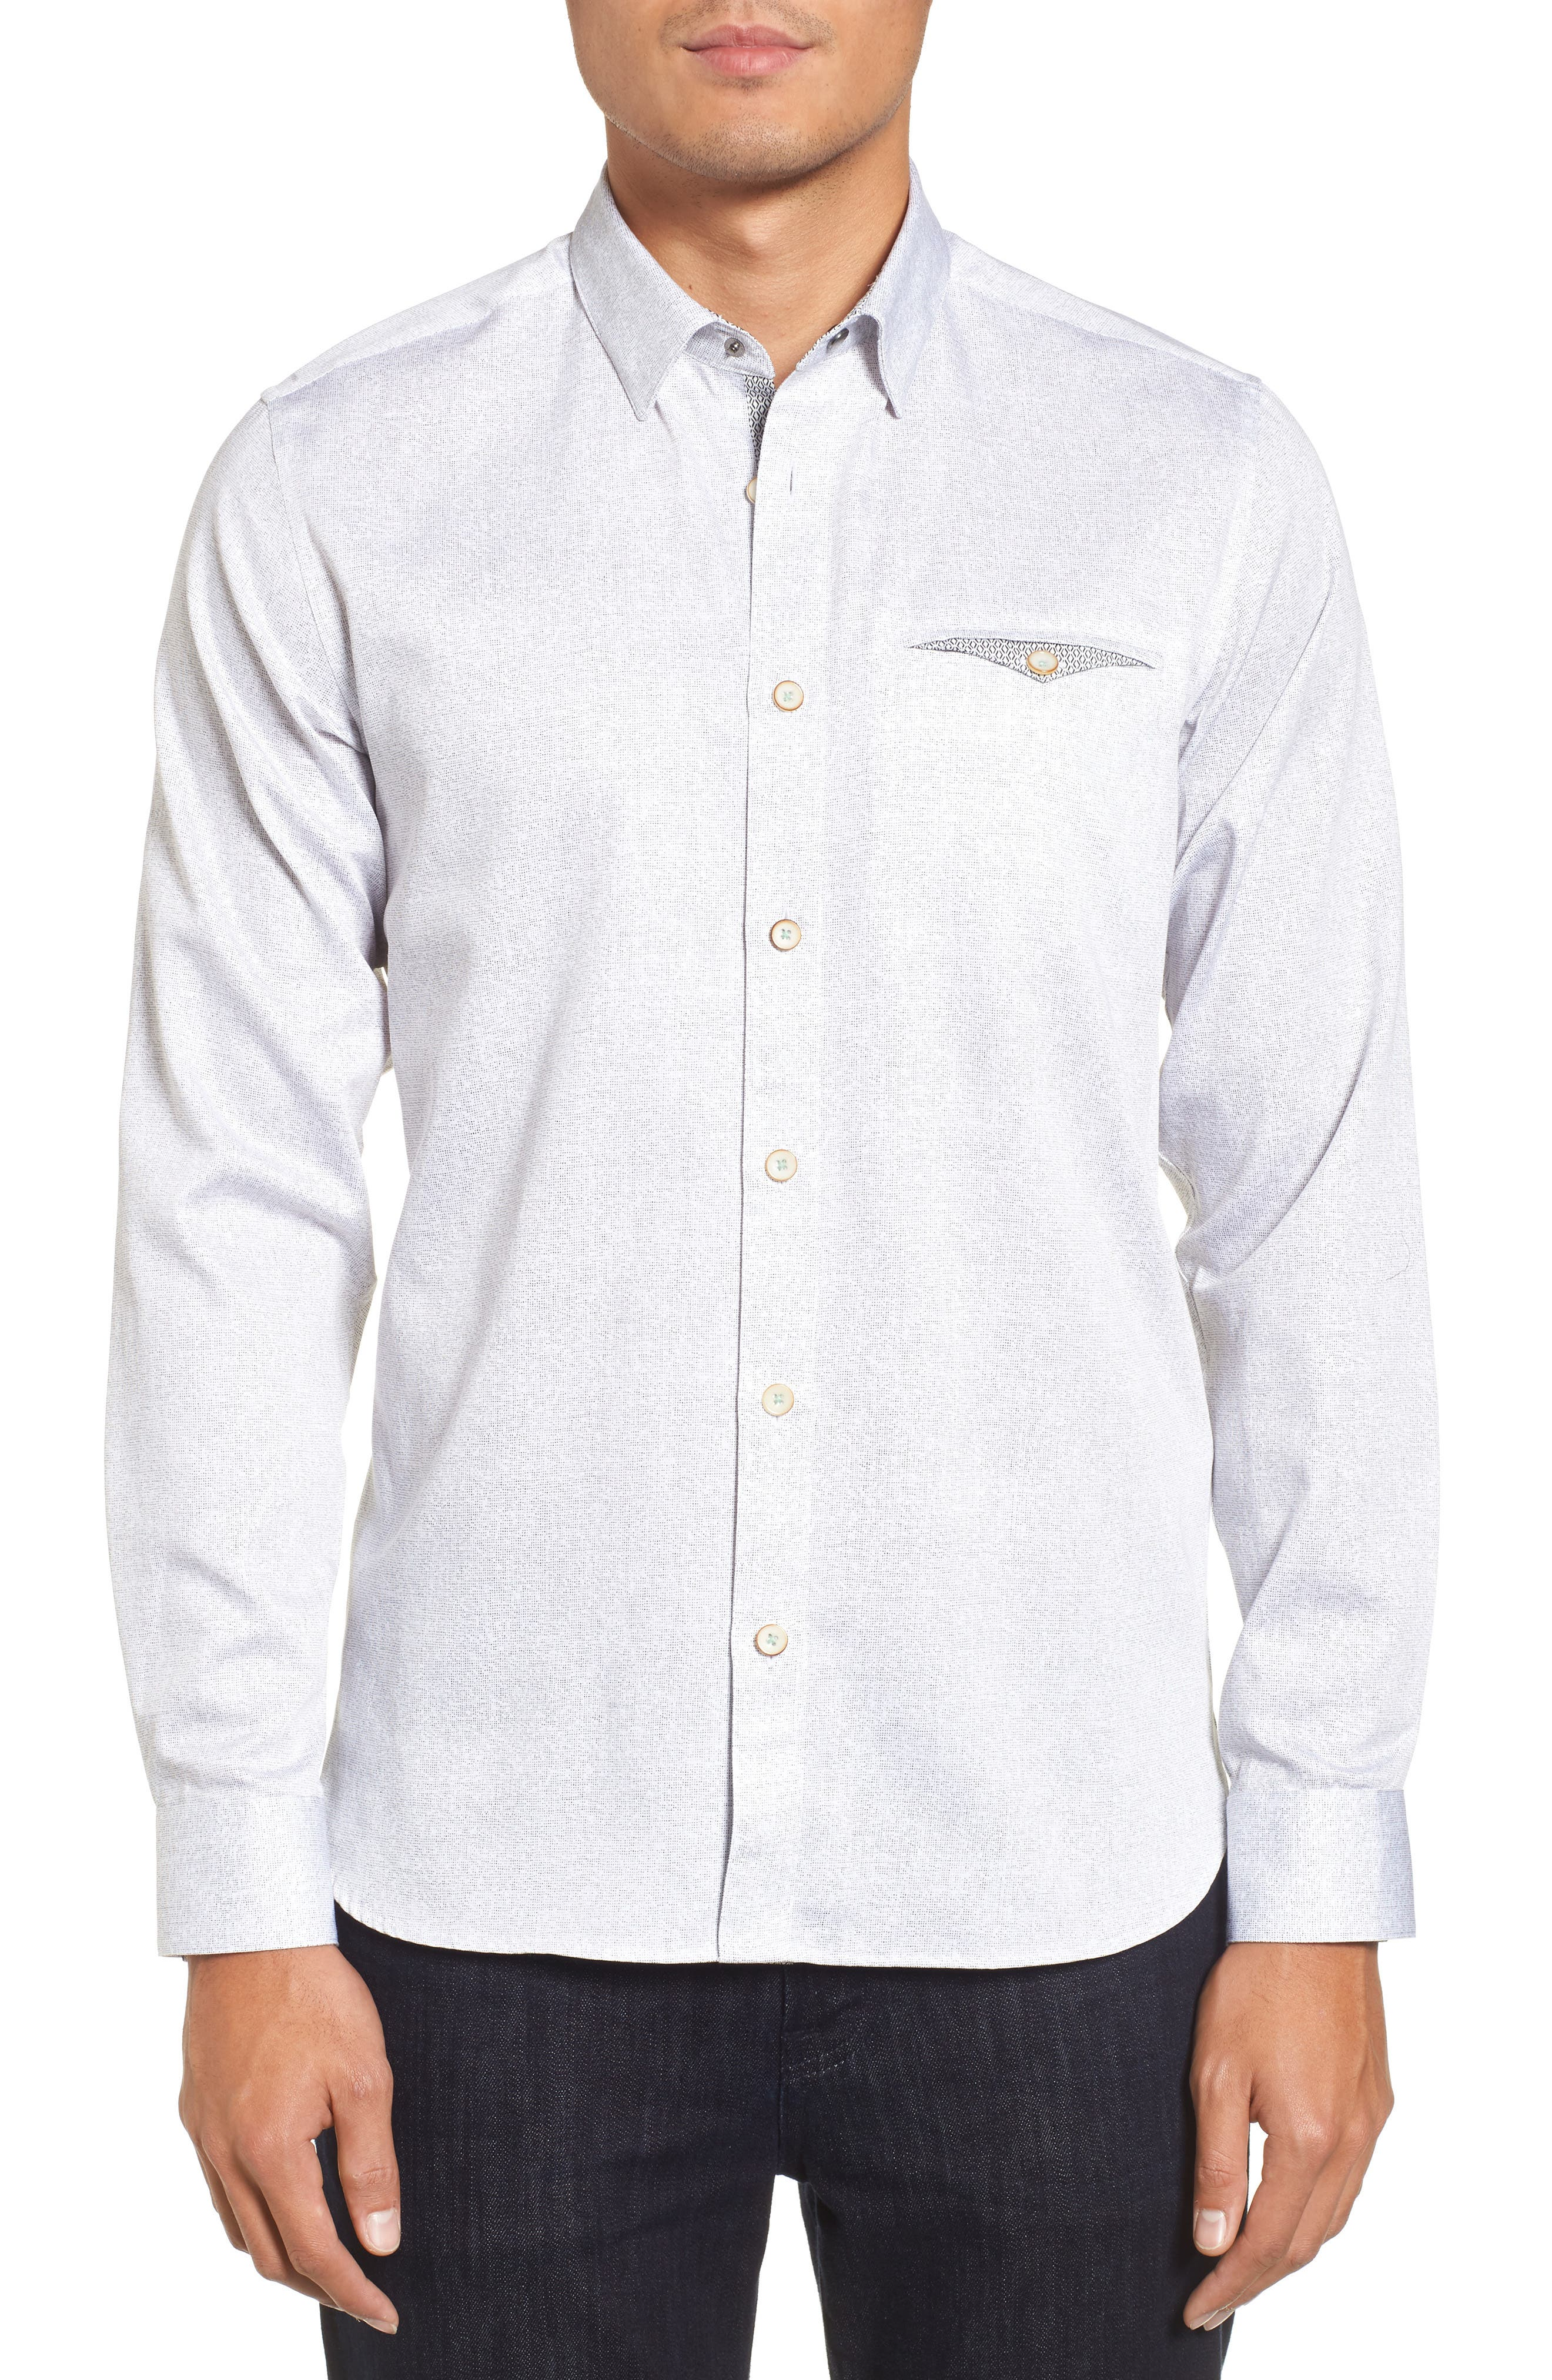 Norbor Modern Slim Fit Microdot Print Sport Shirt,                         Main,                         color, White